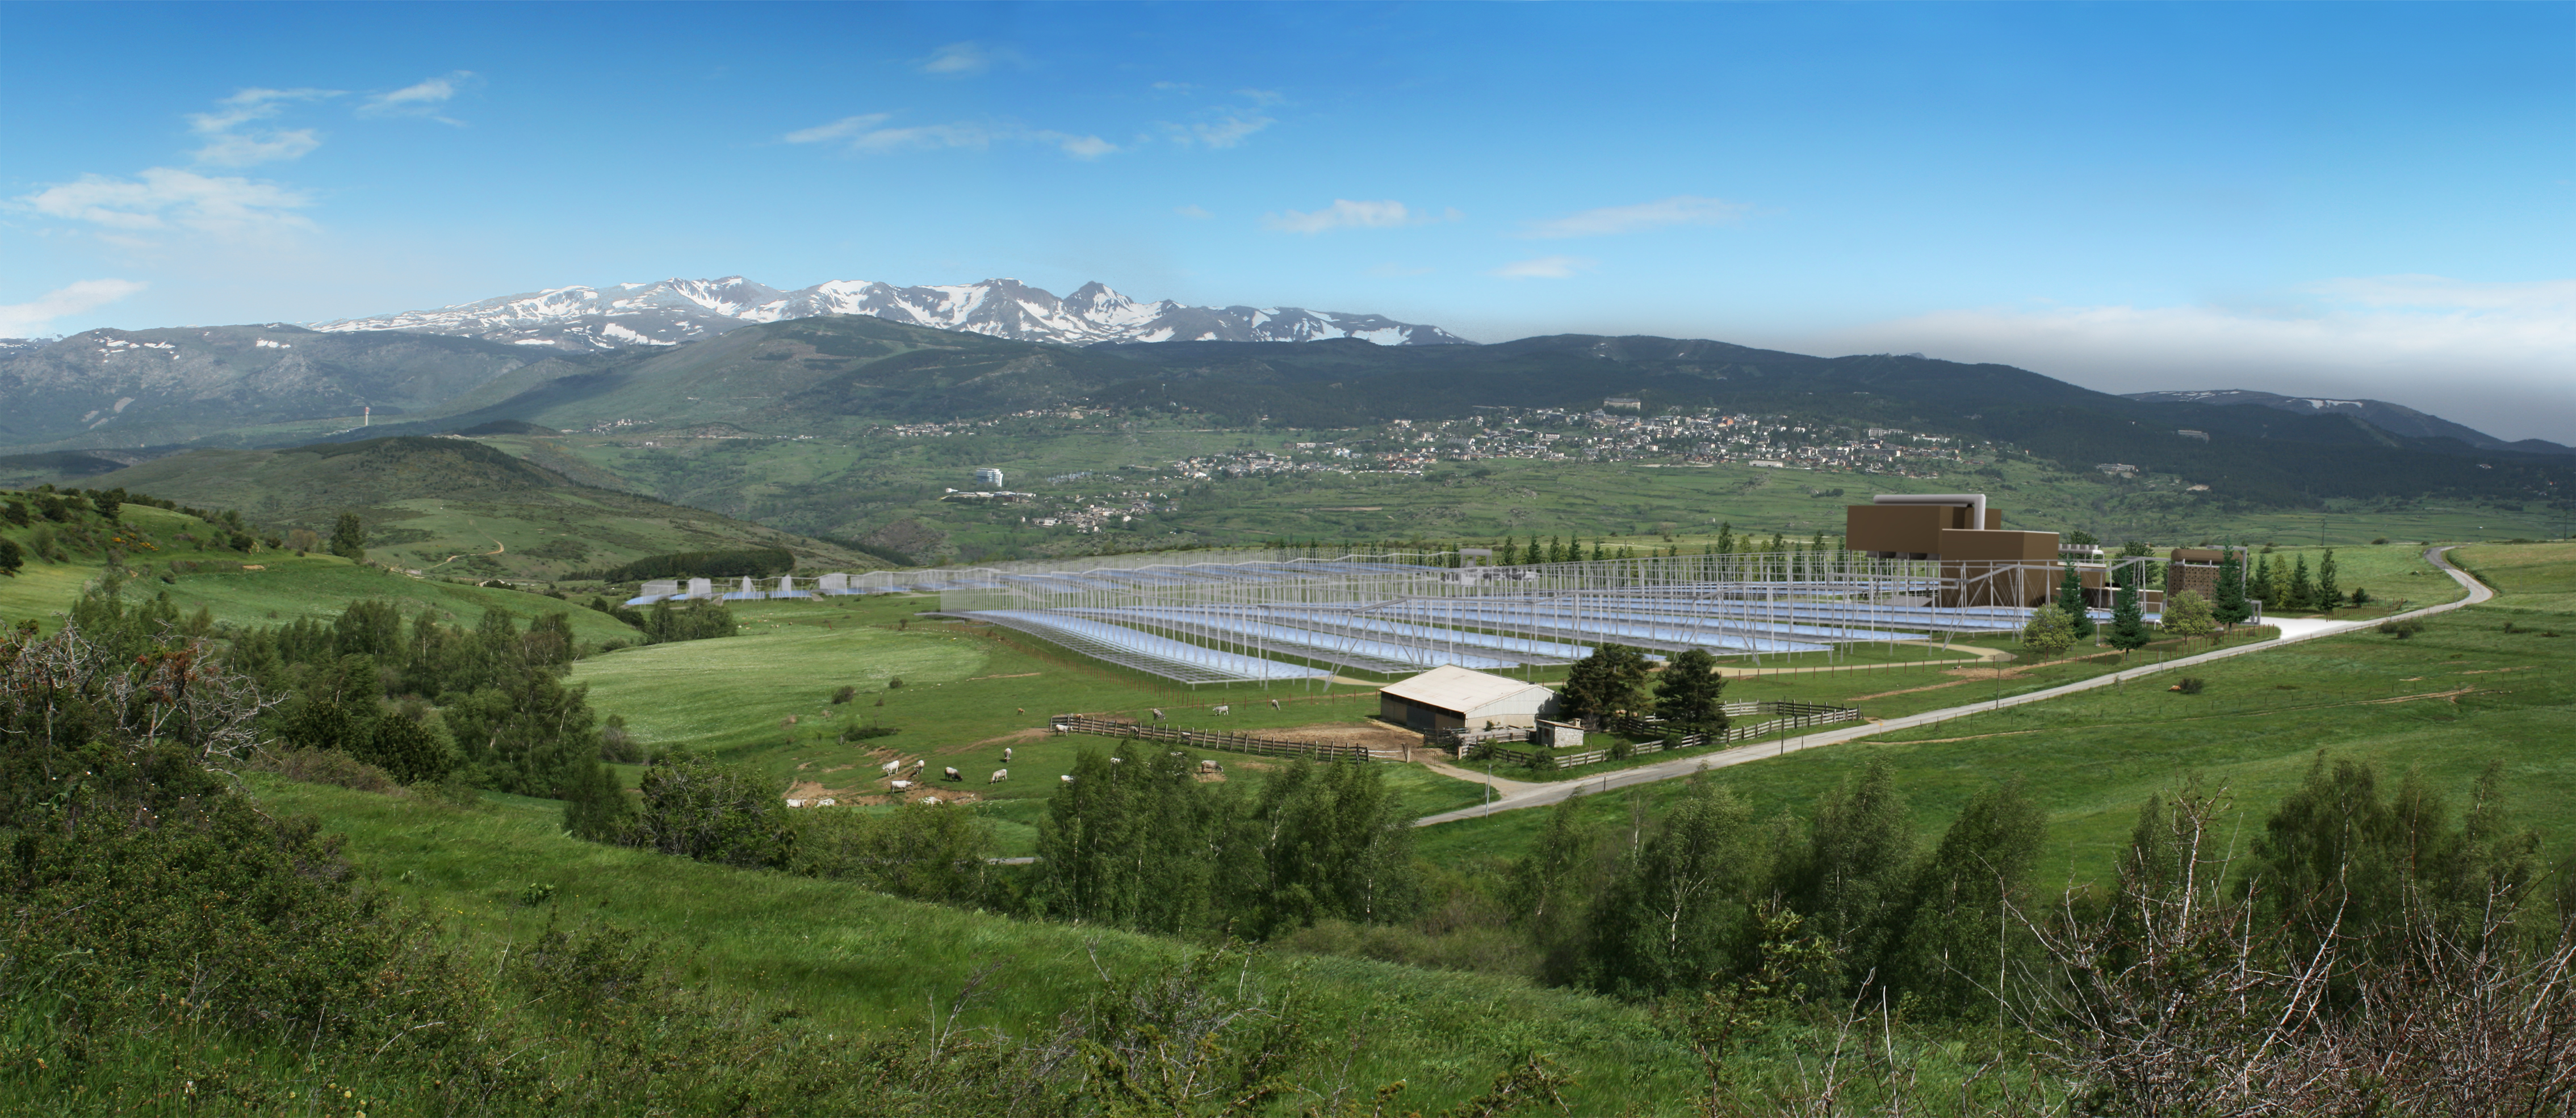 SUNCNIM world's first Fresnel solar thermodynamic power plant with the capacity to store several hours of energy. Copyright CNIM